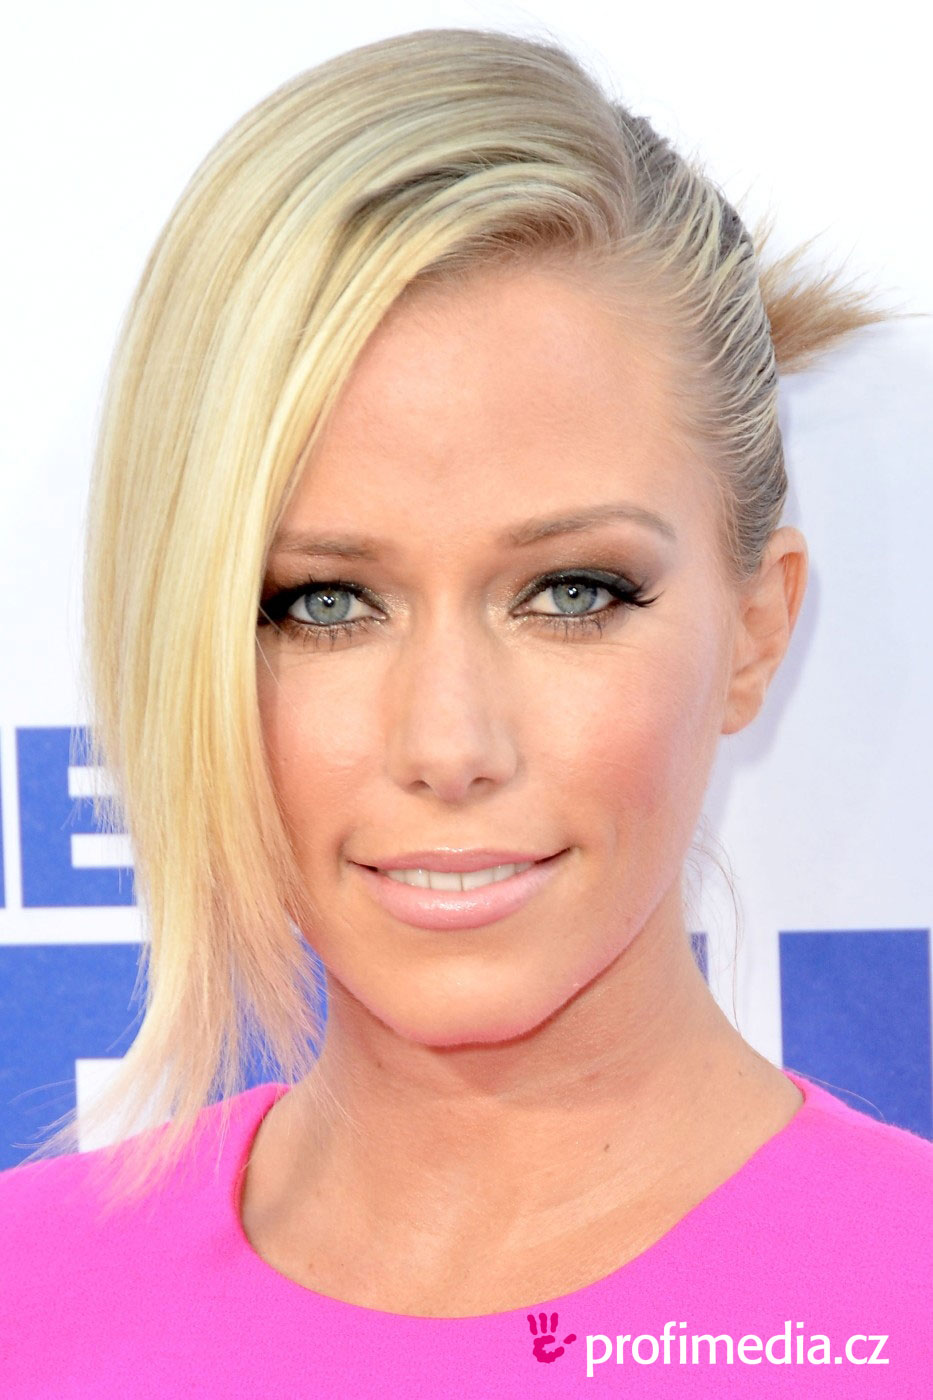 The 31-year old daughter of father Eric W. Wilkinson and mother Patti Wilkinson, 163 cm tall Kendra Wilkinson in 2017 photo